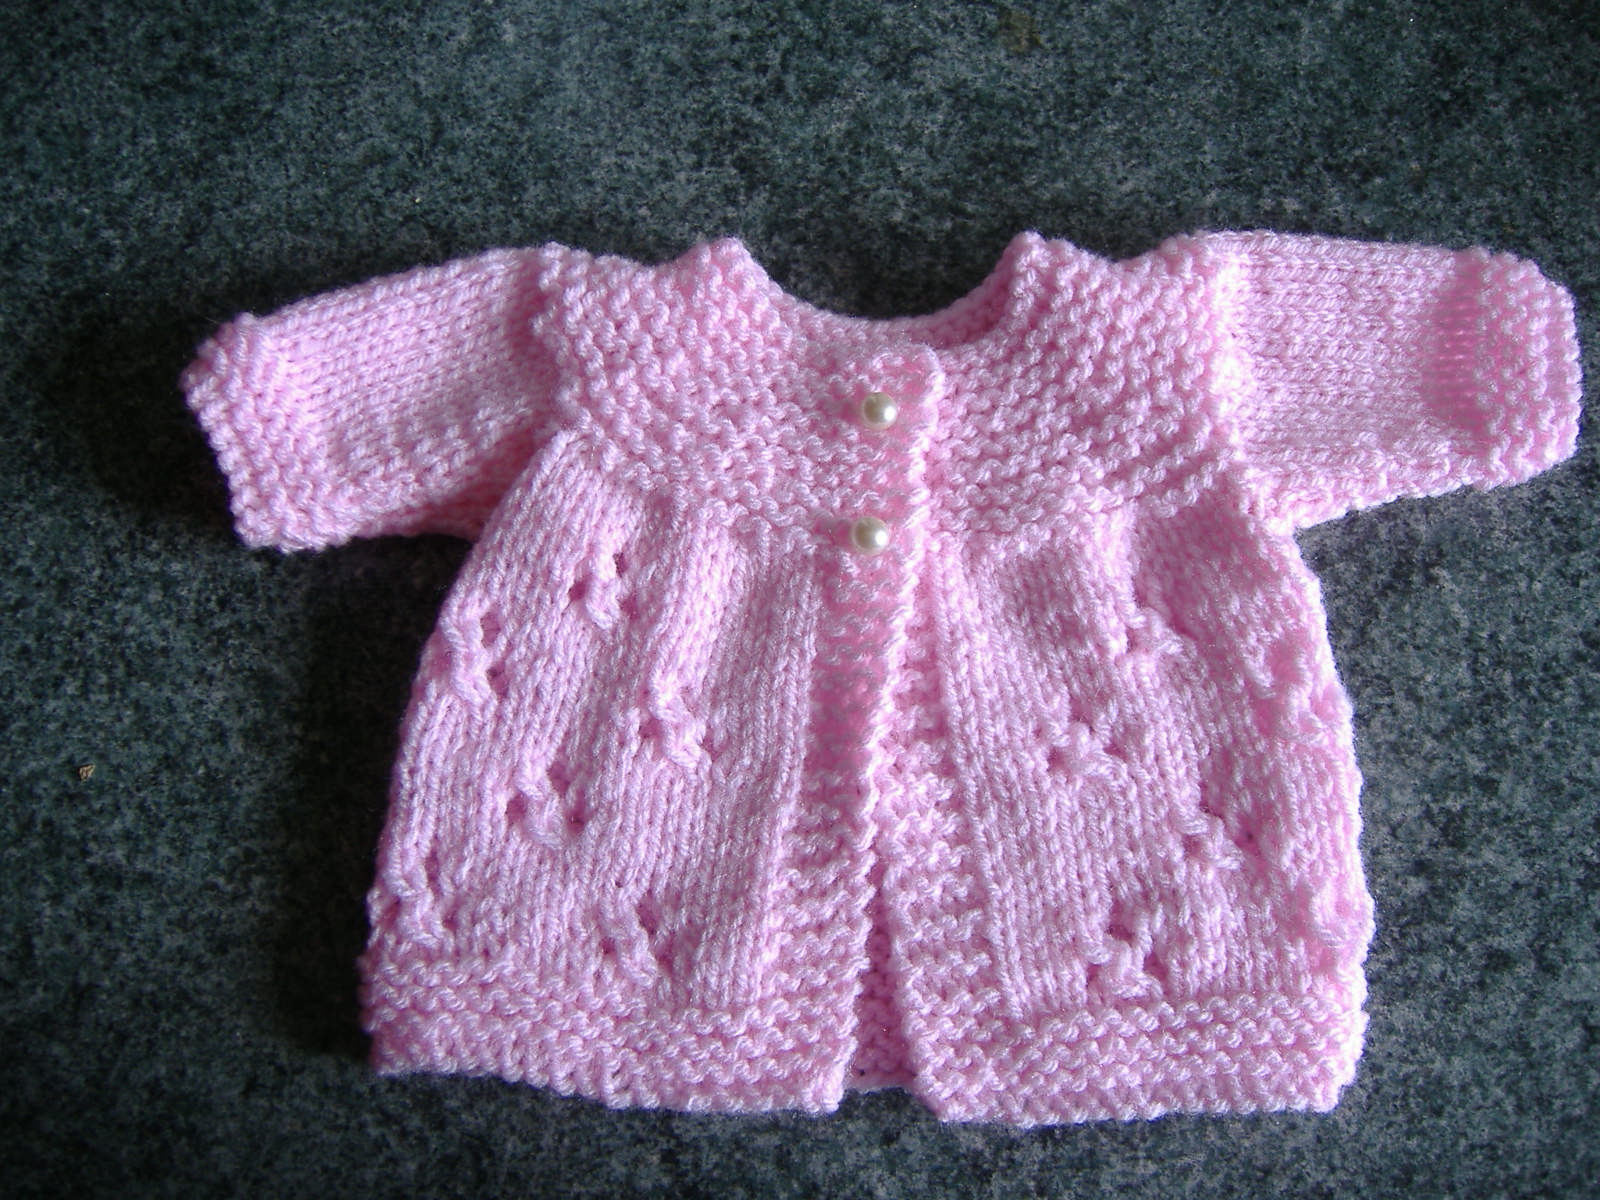 Marianna's Lazy Daisy Days: Premature Baby Jackets